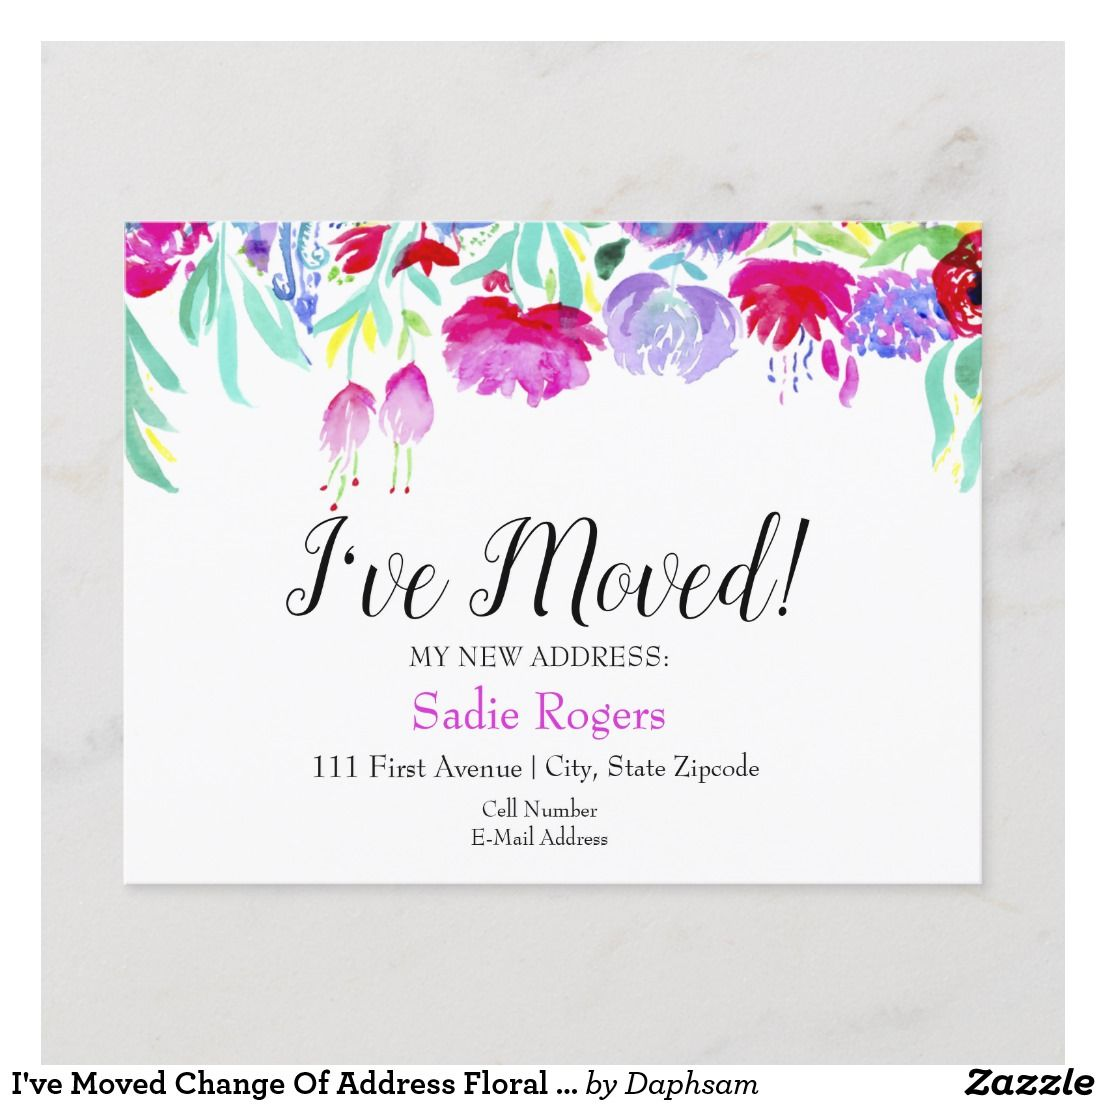 wood address change cards just moved announcement new address card faux wood we have moved card Floral we/'ve moved announcement card